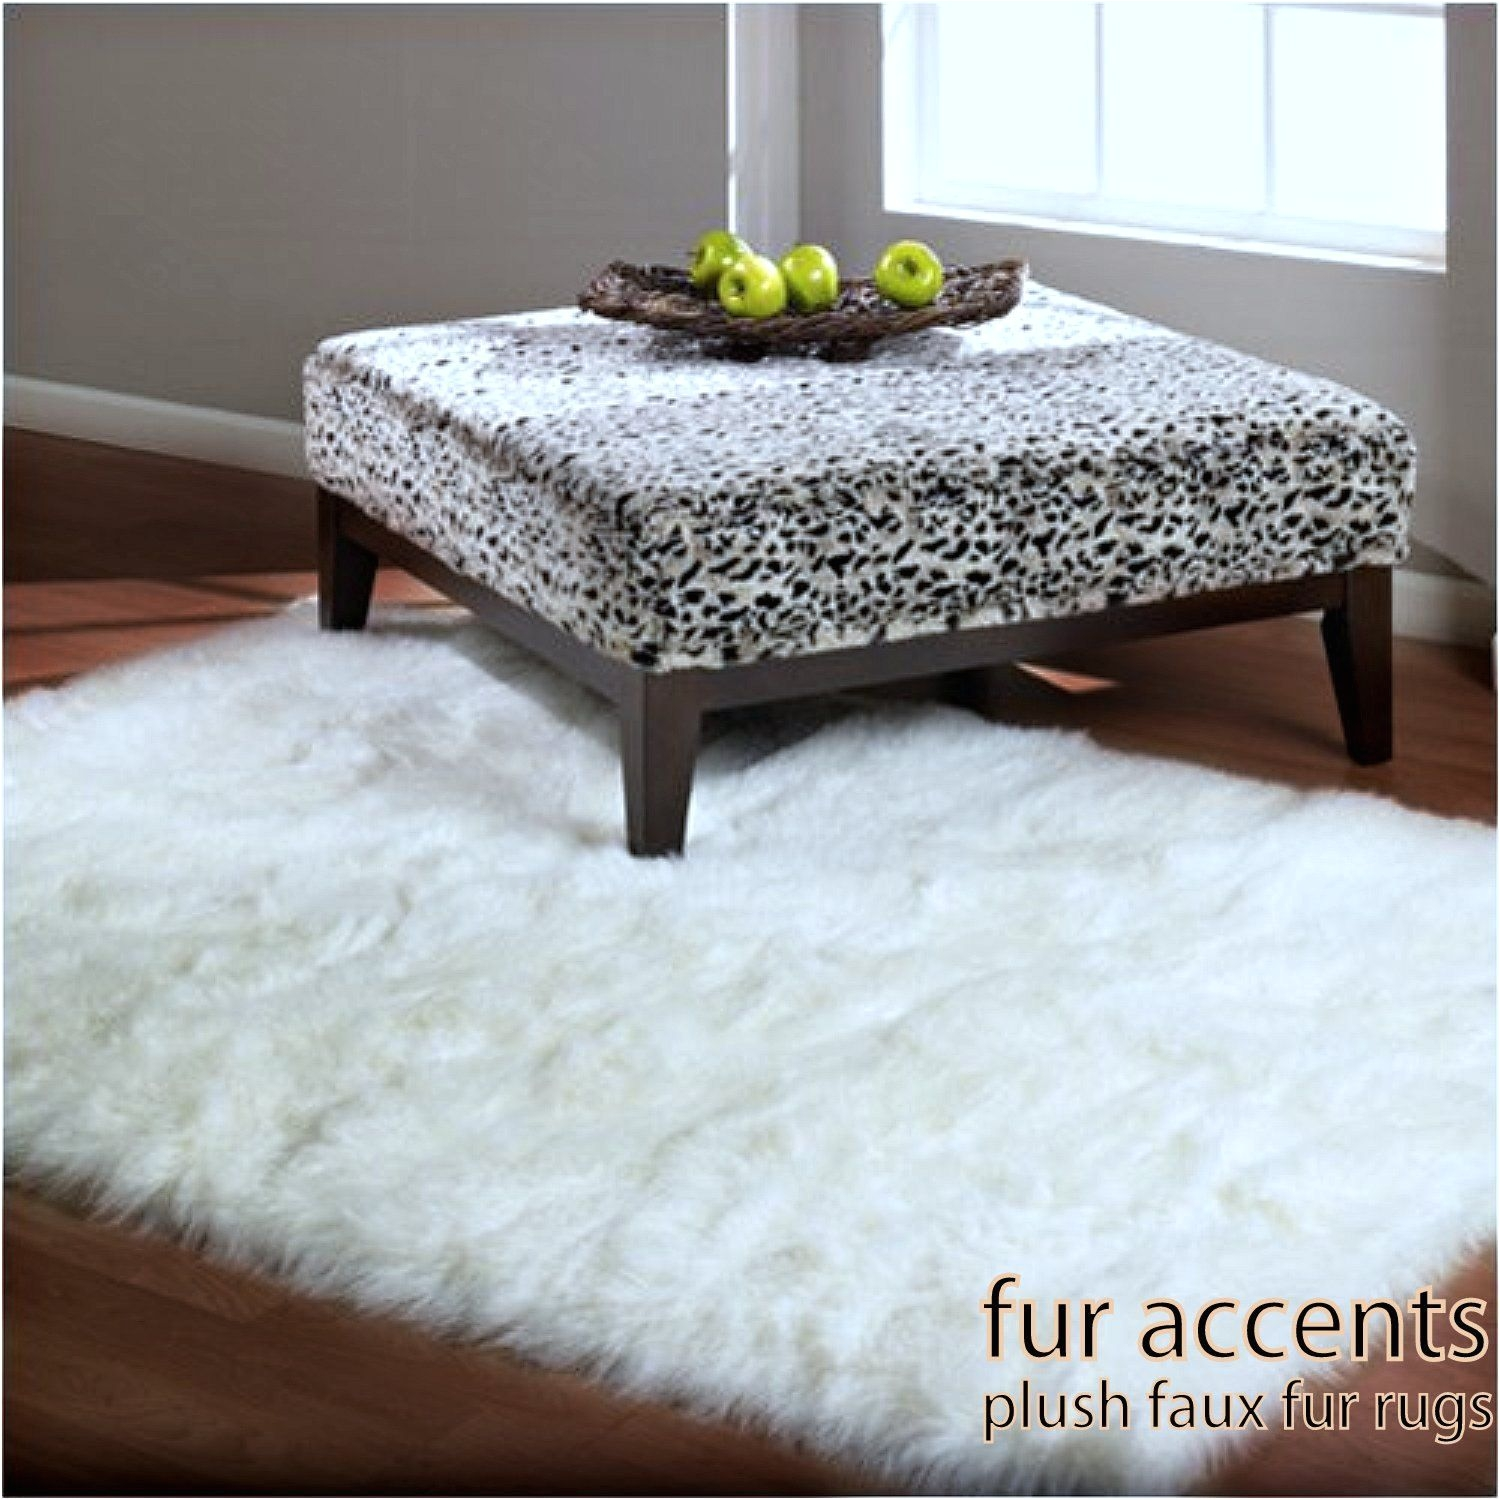 5 faux fur rectangular sheepskin area rug bright white or off white bear